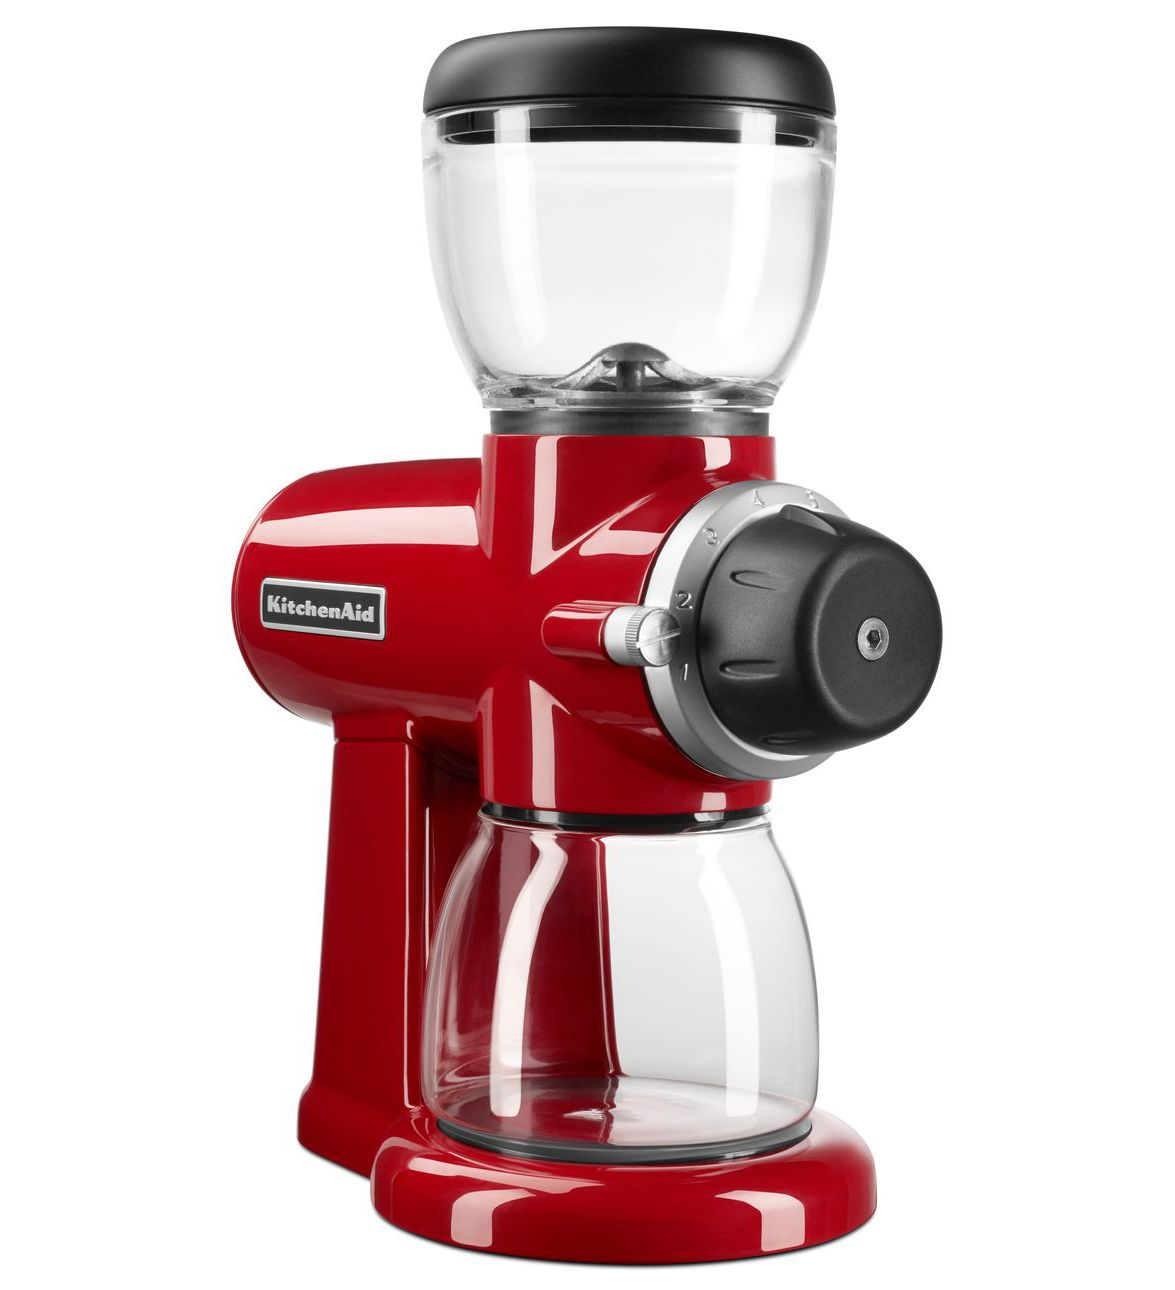 KitchenAid Burr Grinder Information and Replacement Parts